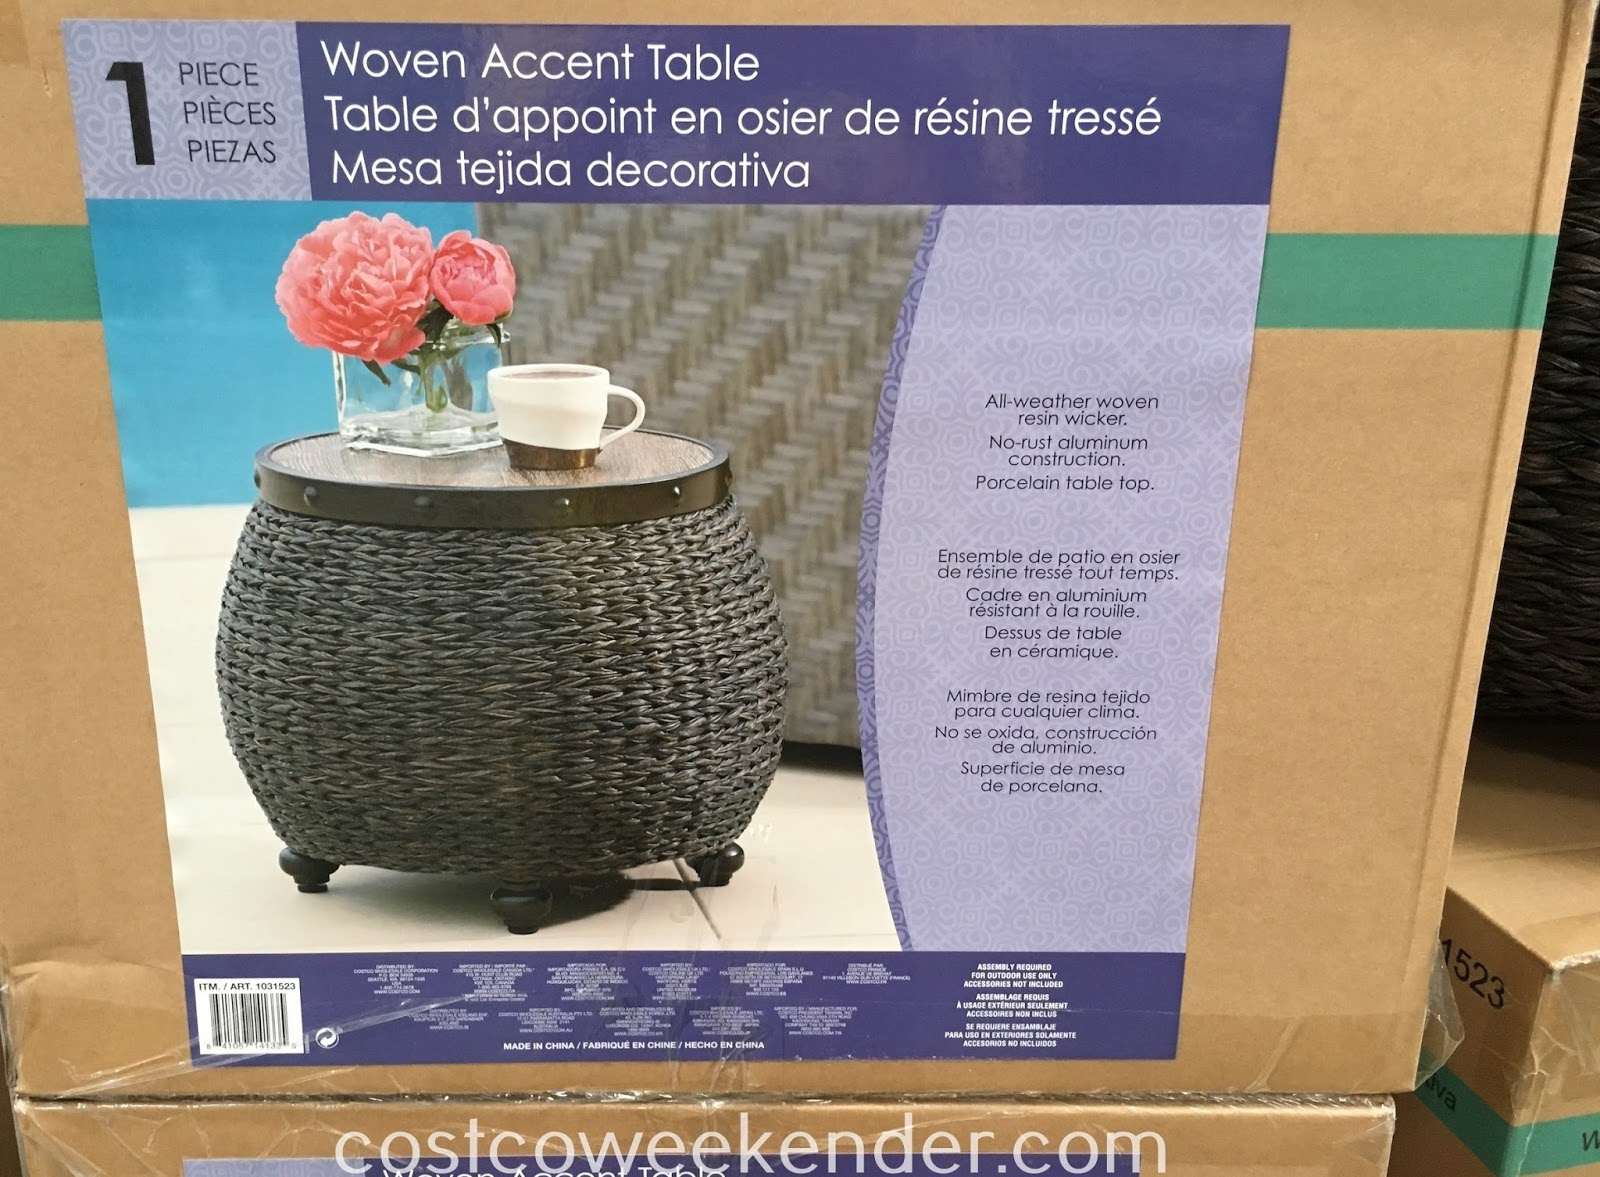 woven accent table weekender have place set your drink tablet book when lounging outside with round coffee tables half moon dining argos bedroom furniture antique hall cupcake